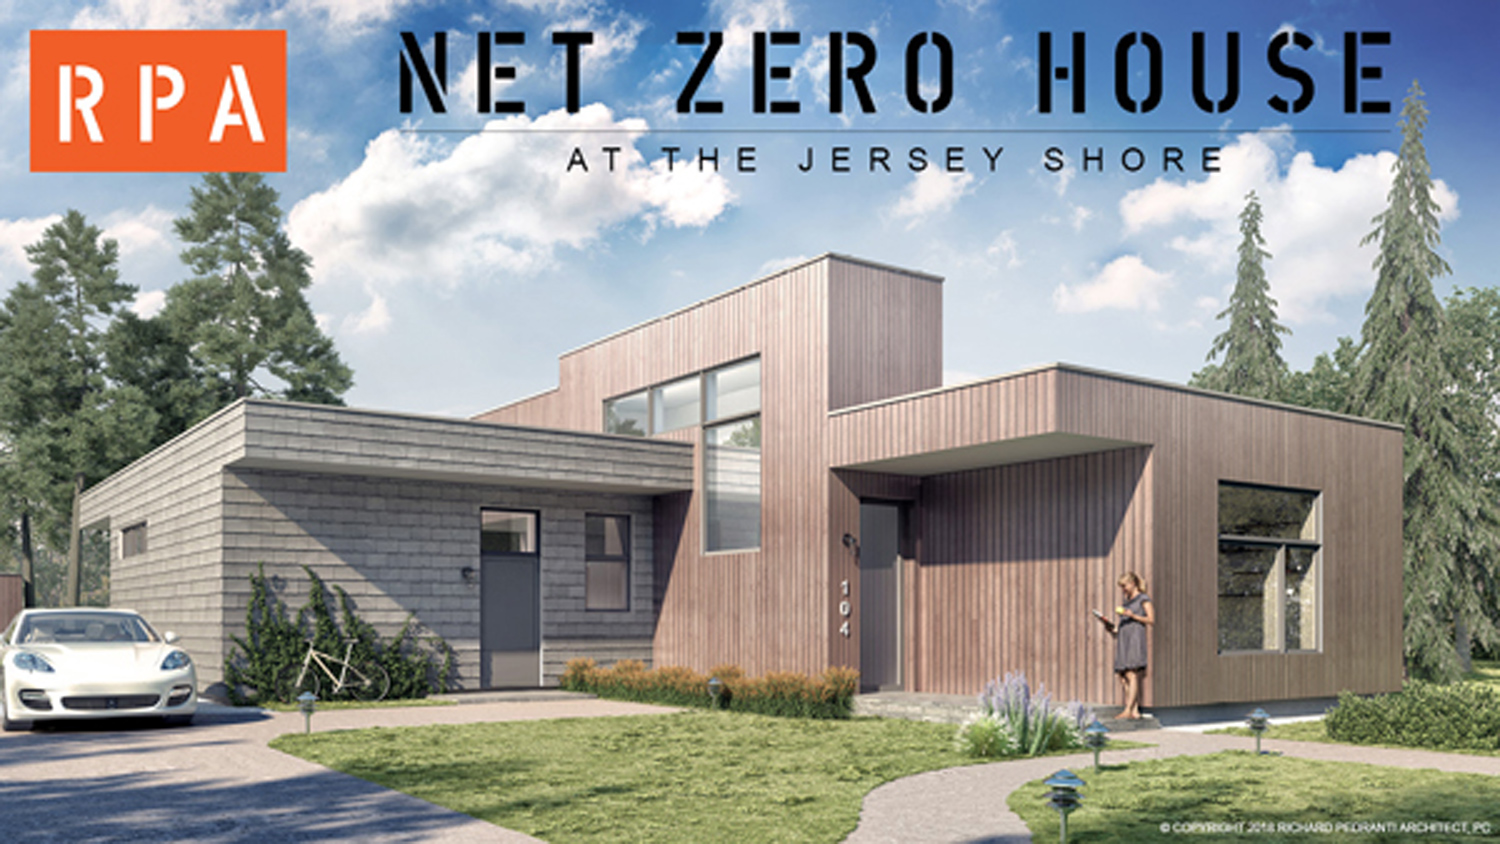 Richard Pedranti Architect Prefabricated Net Zero House Is